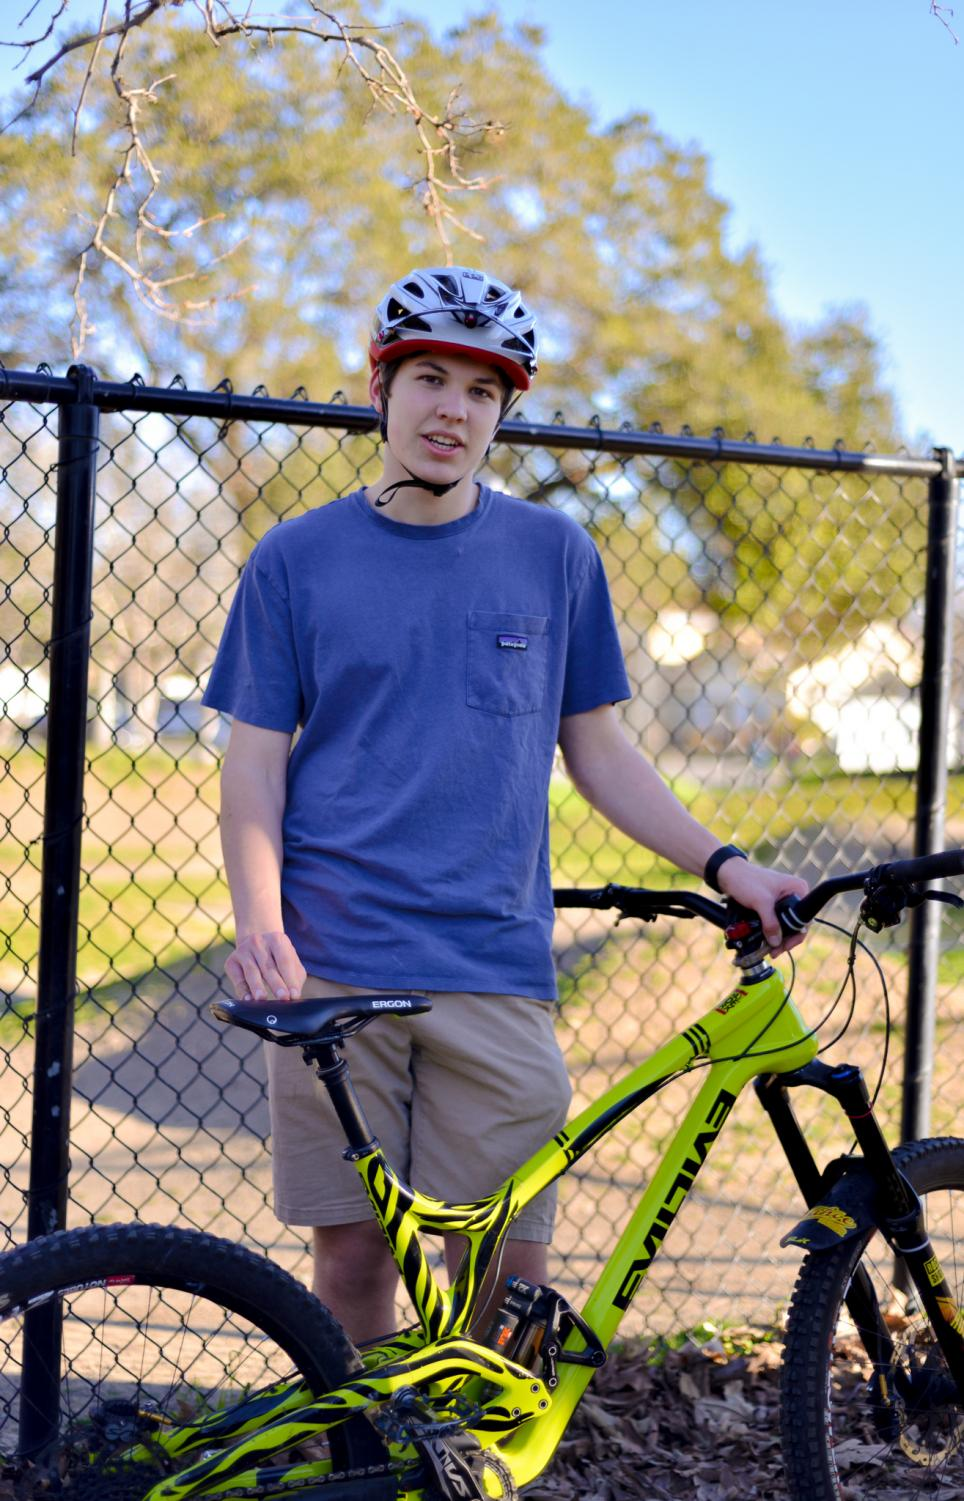 """For me, mountain biking is about the experience and the community and people you hang out with. I don't dwell much on what place I finish, but more on improving my time, meeting new people, hanging out with my friends,"" Chris Leafstrand (12) said."